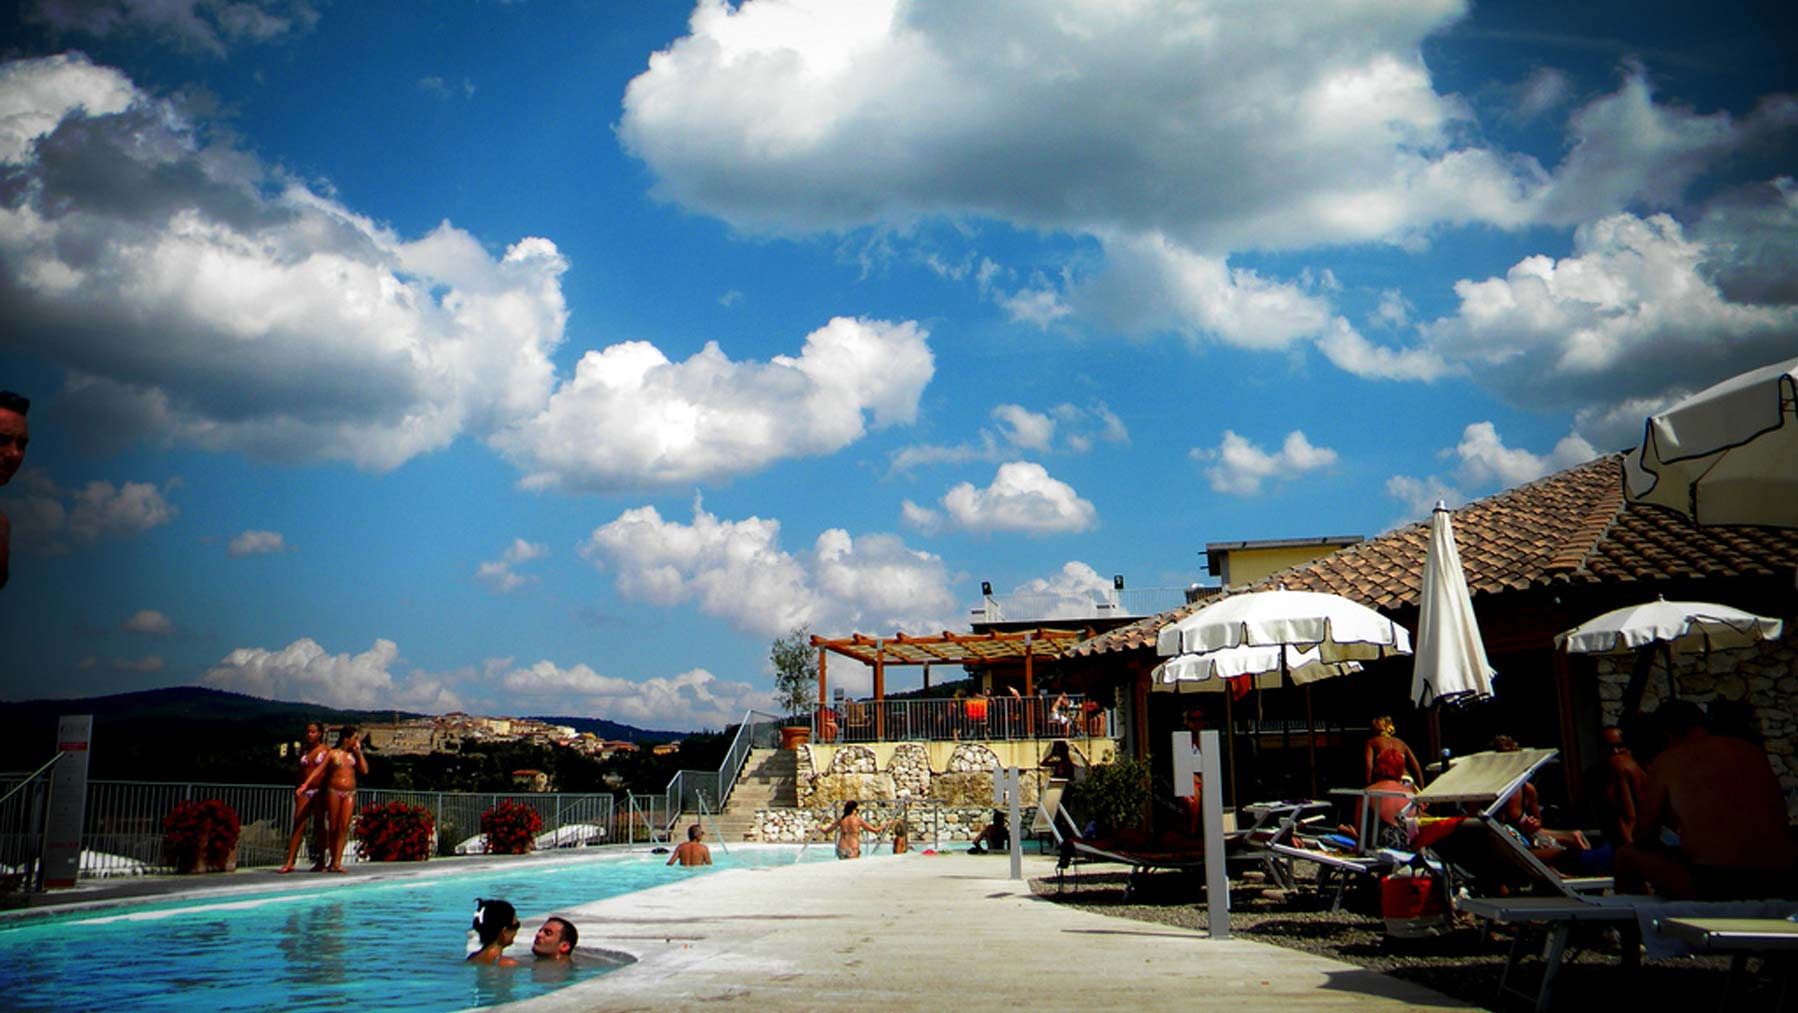 ANYONE IN SEARCH OF REST & RELAXATION AND A DIP AT A THERMAL SPA - Farm Holiday Il Molinello